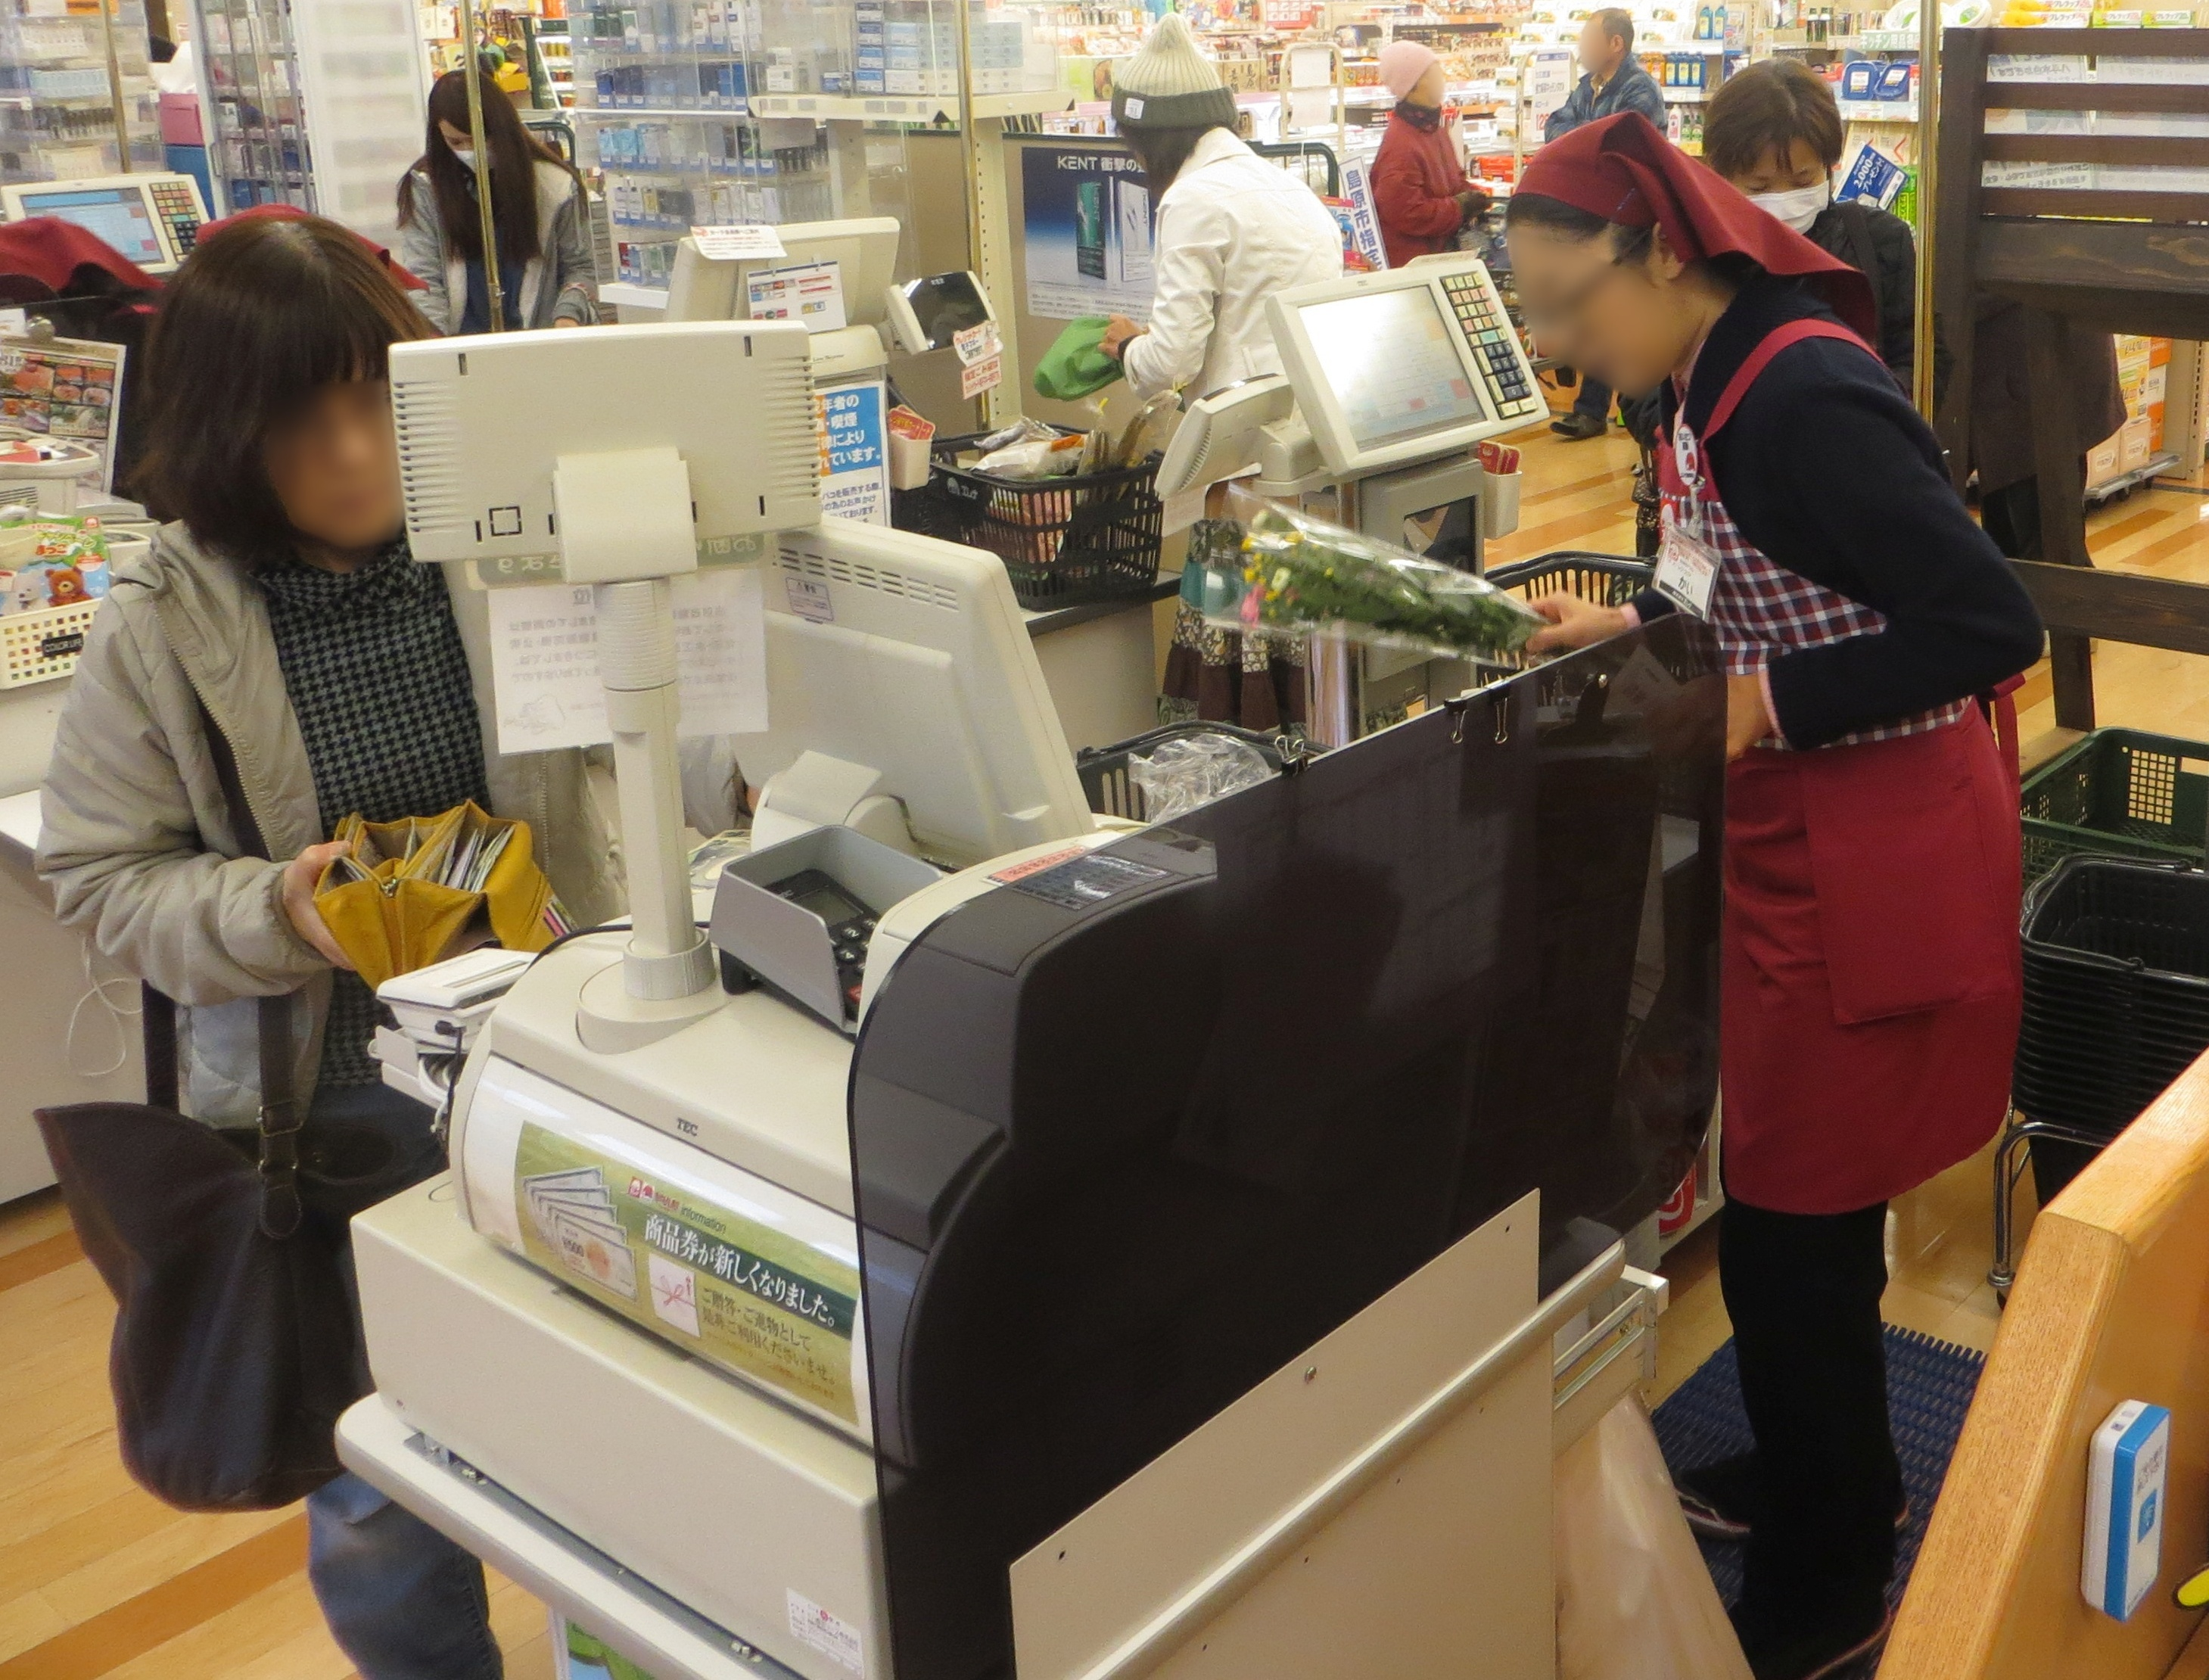 Japan Supermarket One Person Checkout